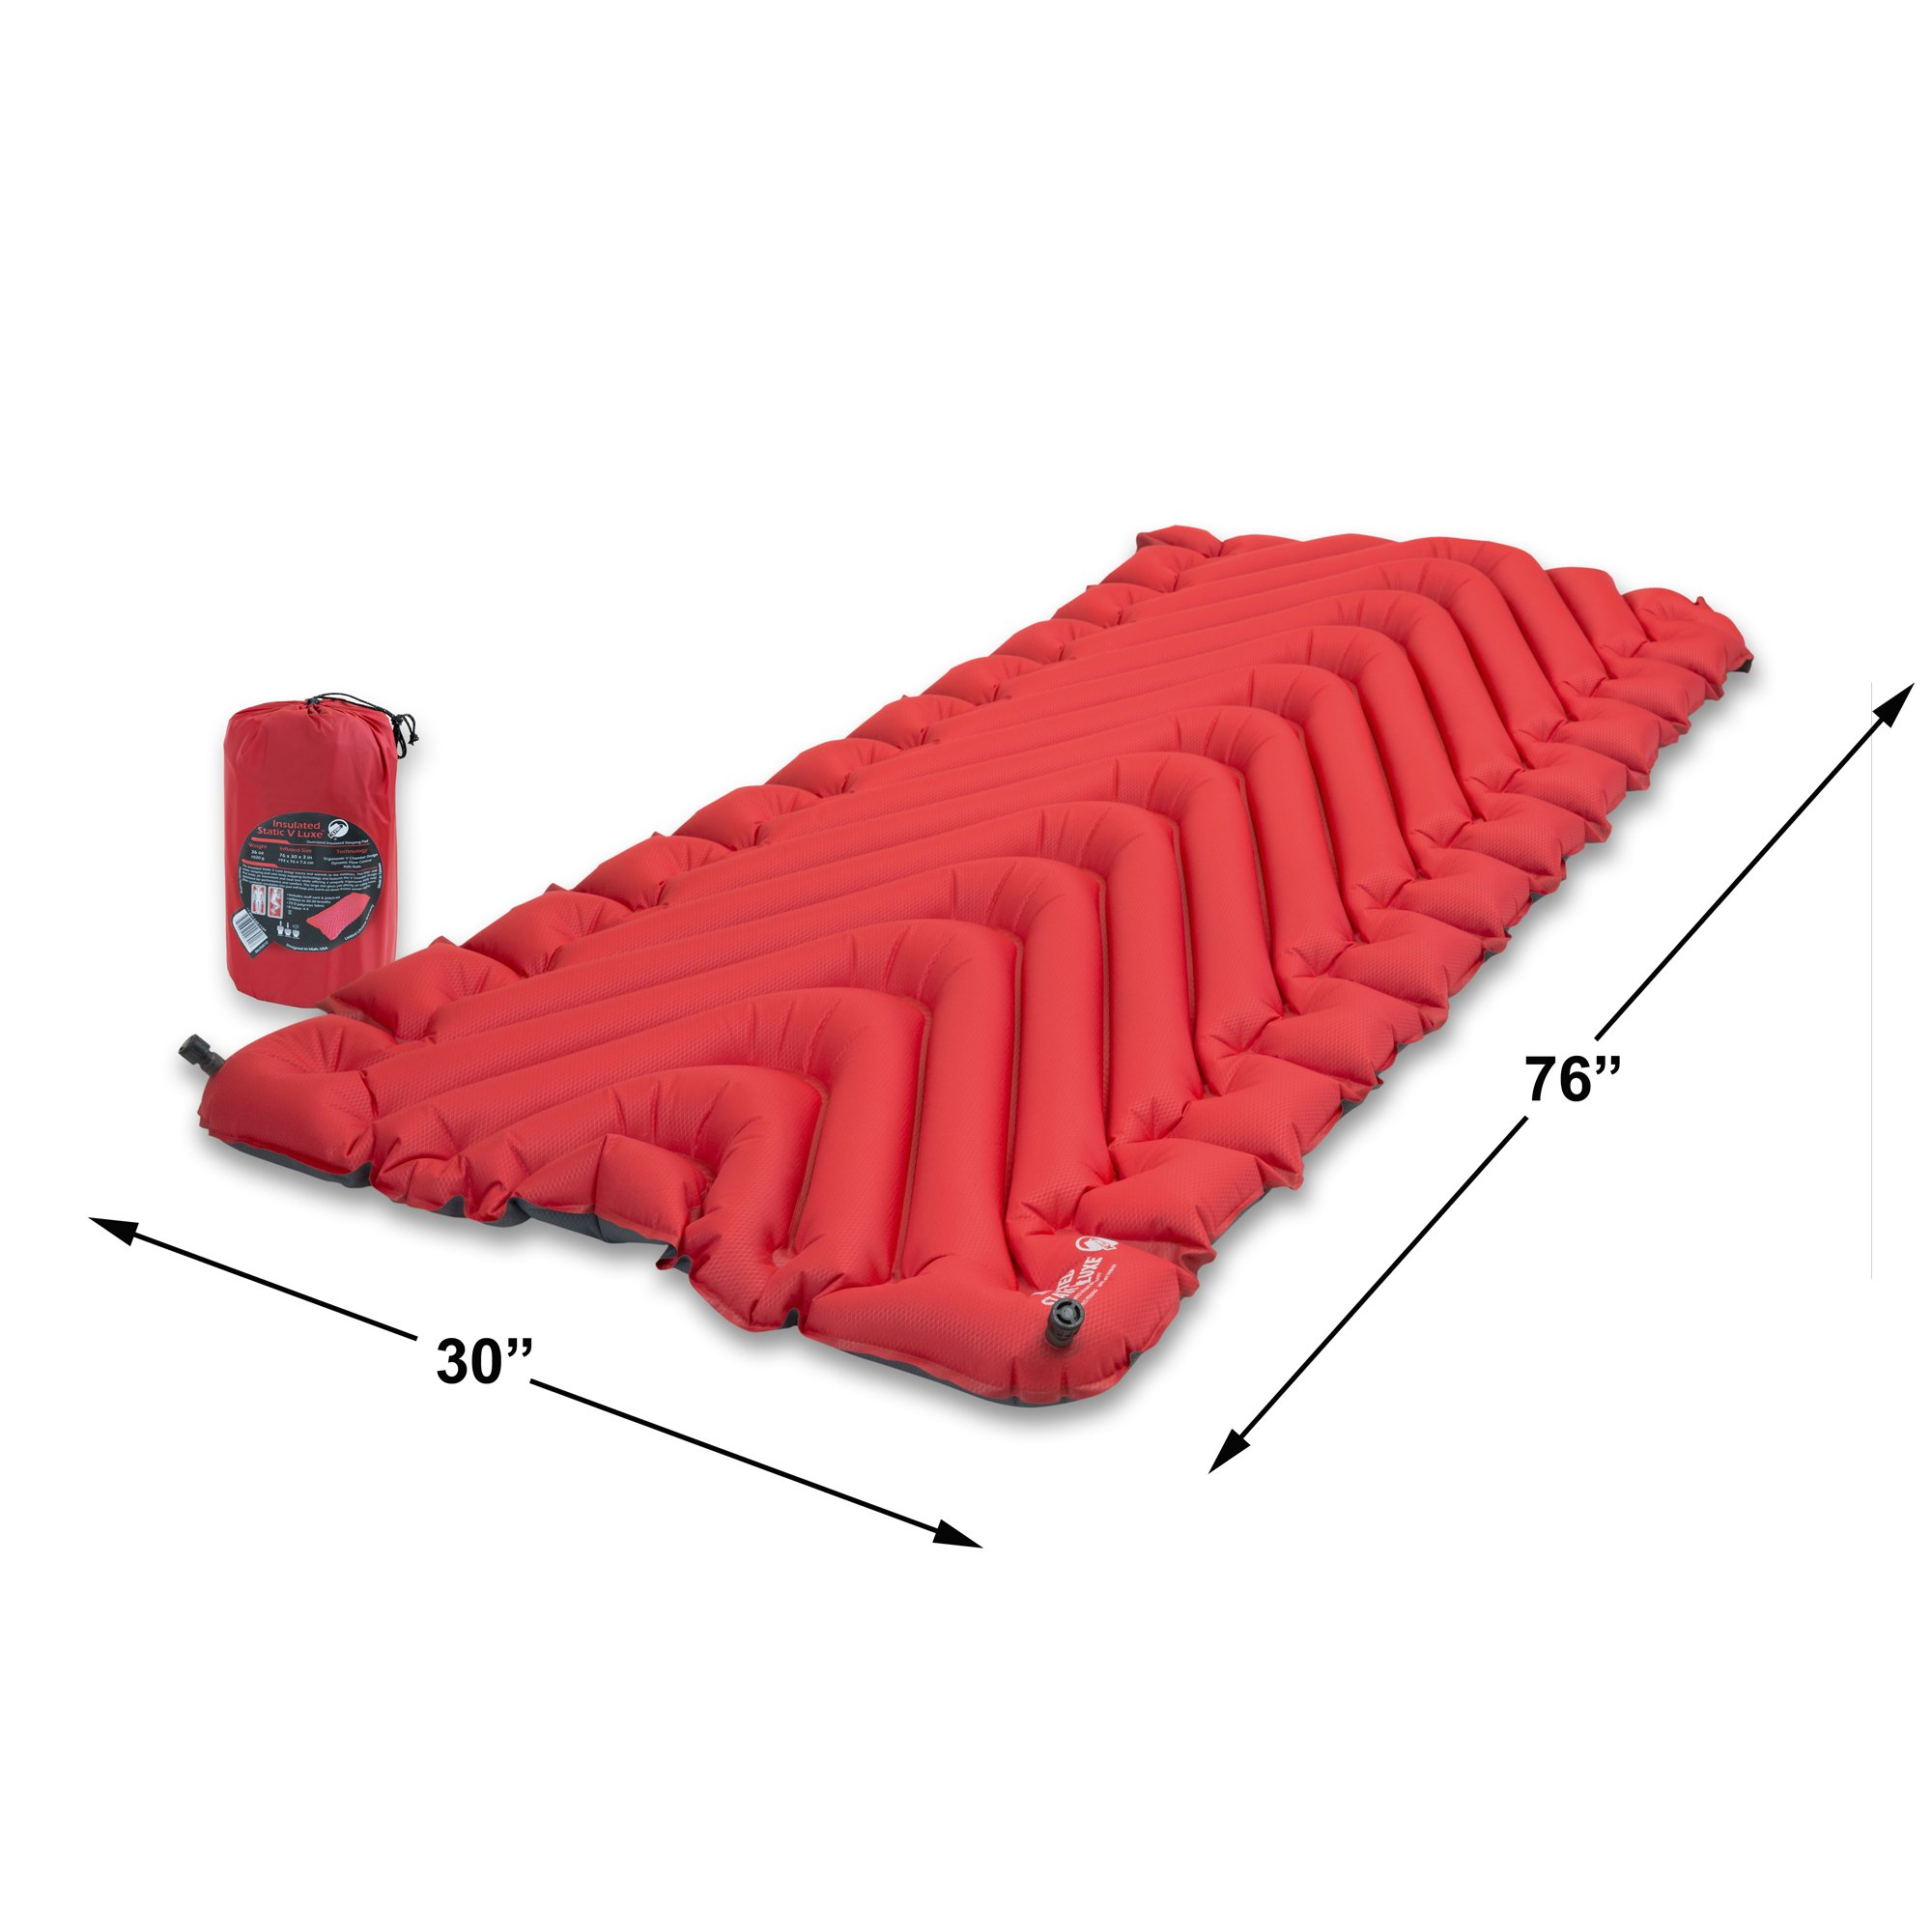 directly review blog exped can camping used lite ground mat onto be inflateable synmat l sleeping